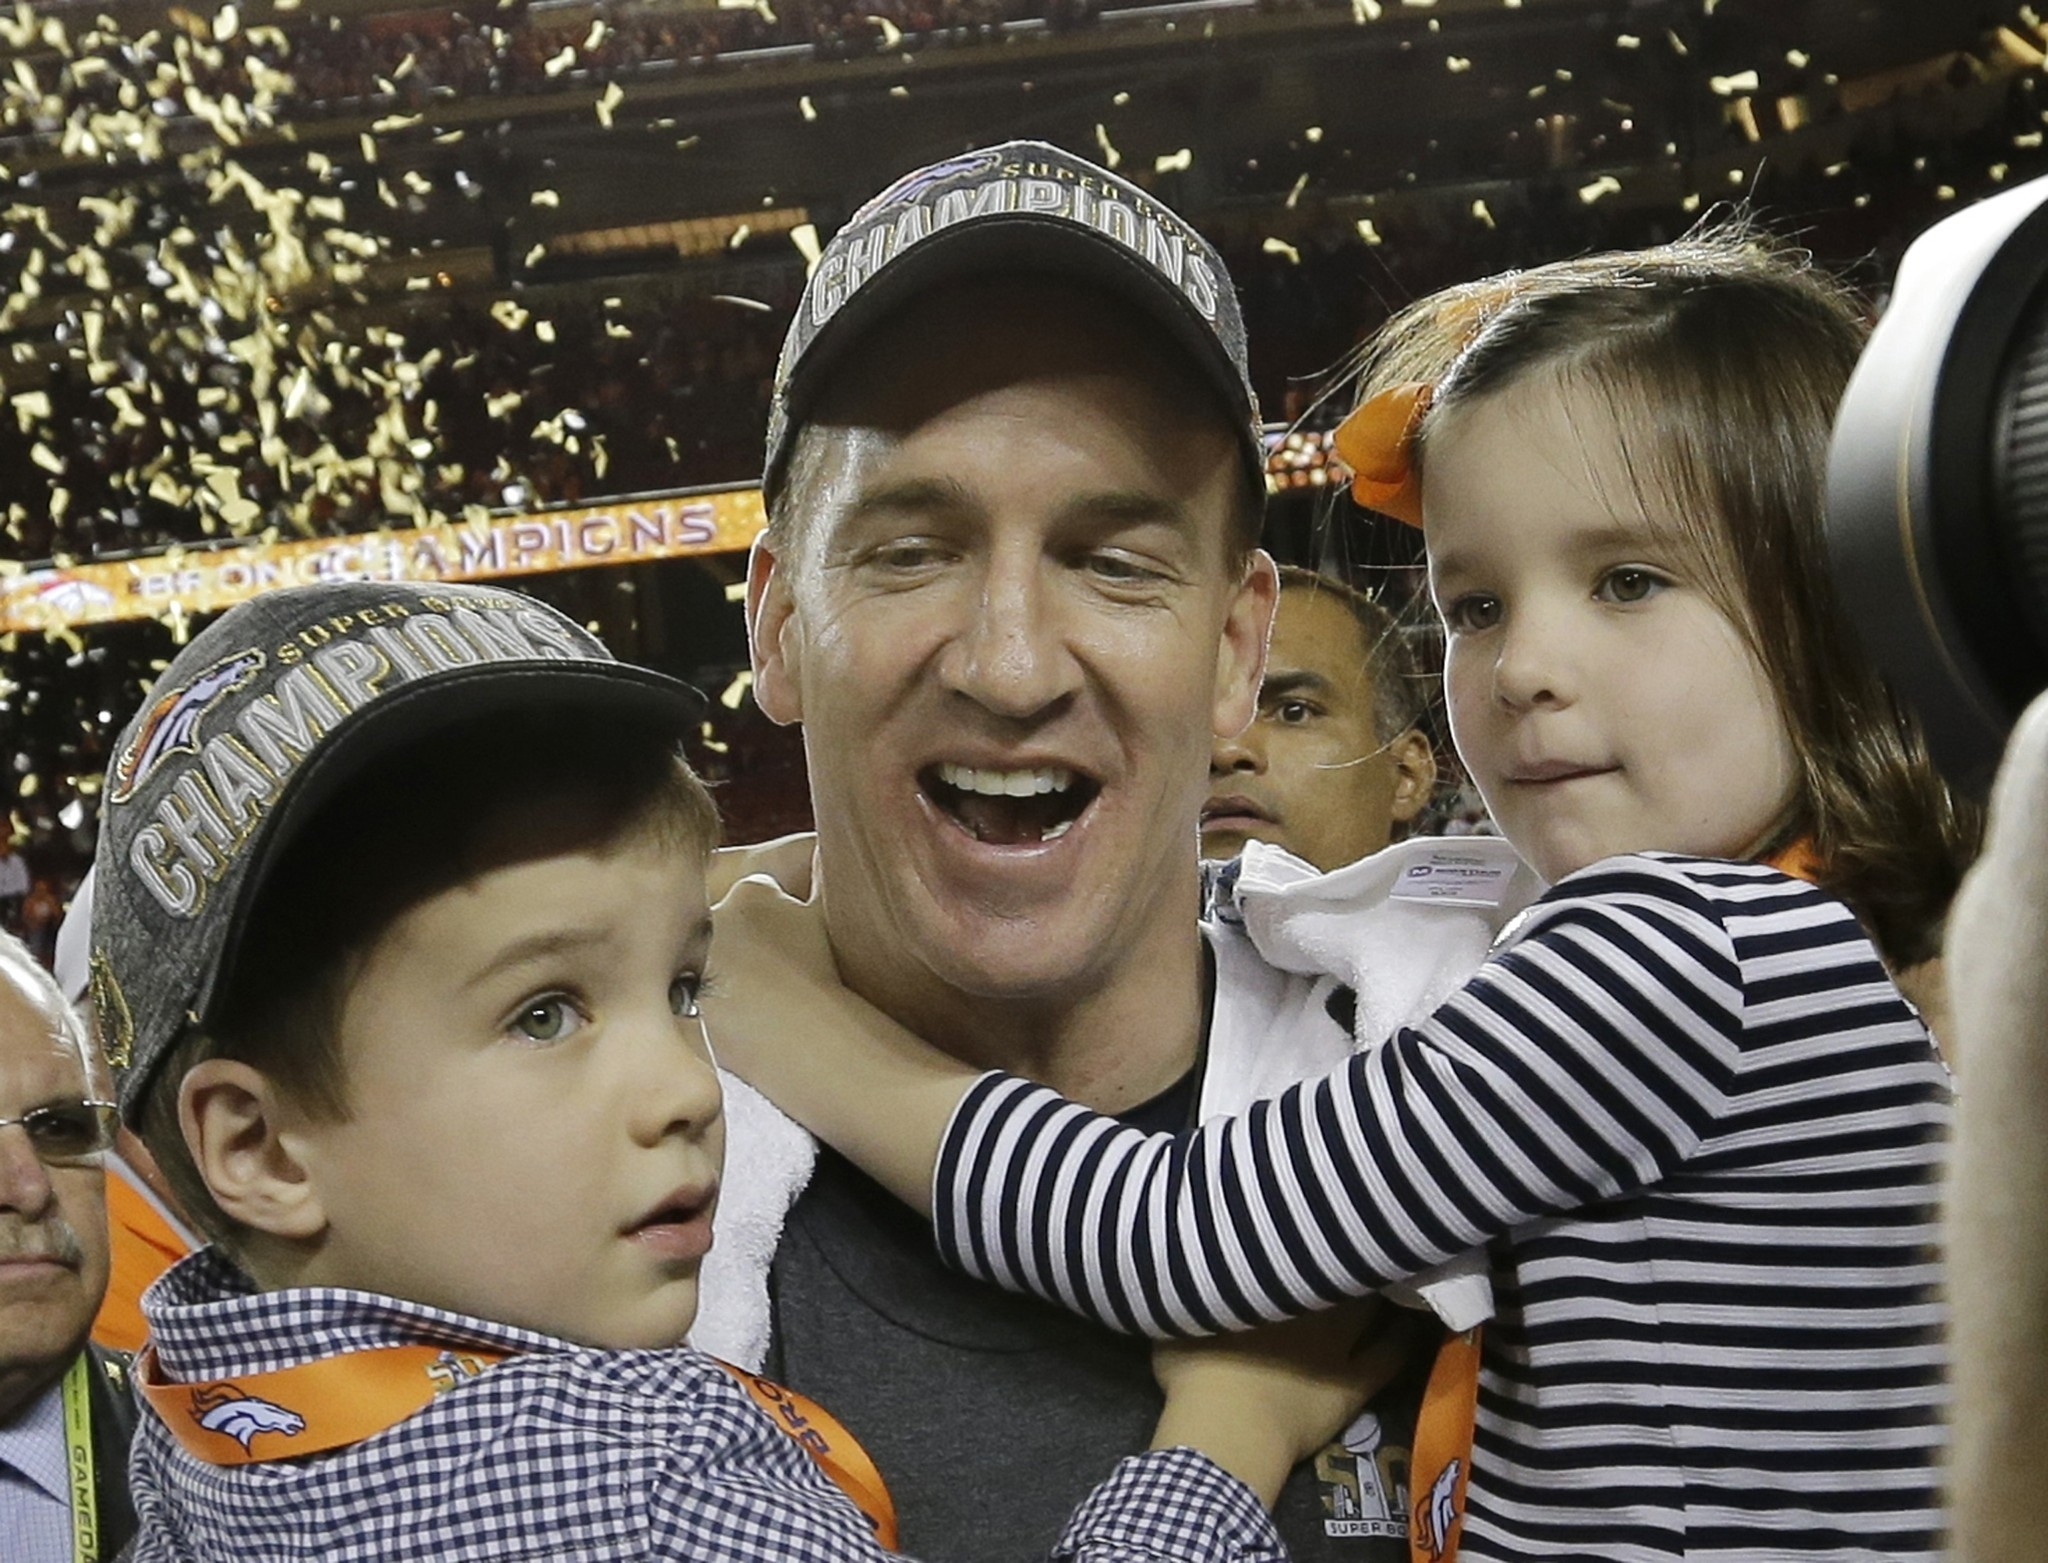 Bal-peyton-manning-saves-his-big-announcement-for-a-more-appropriate-time-20160207